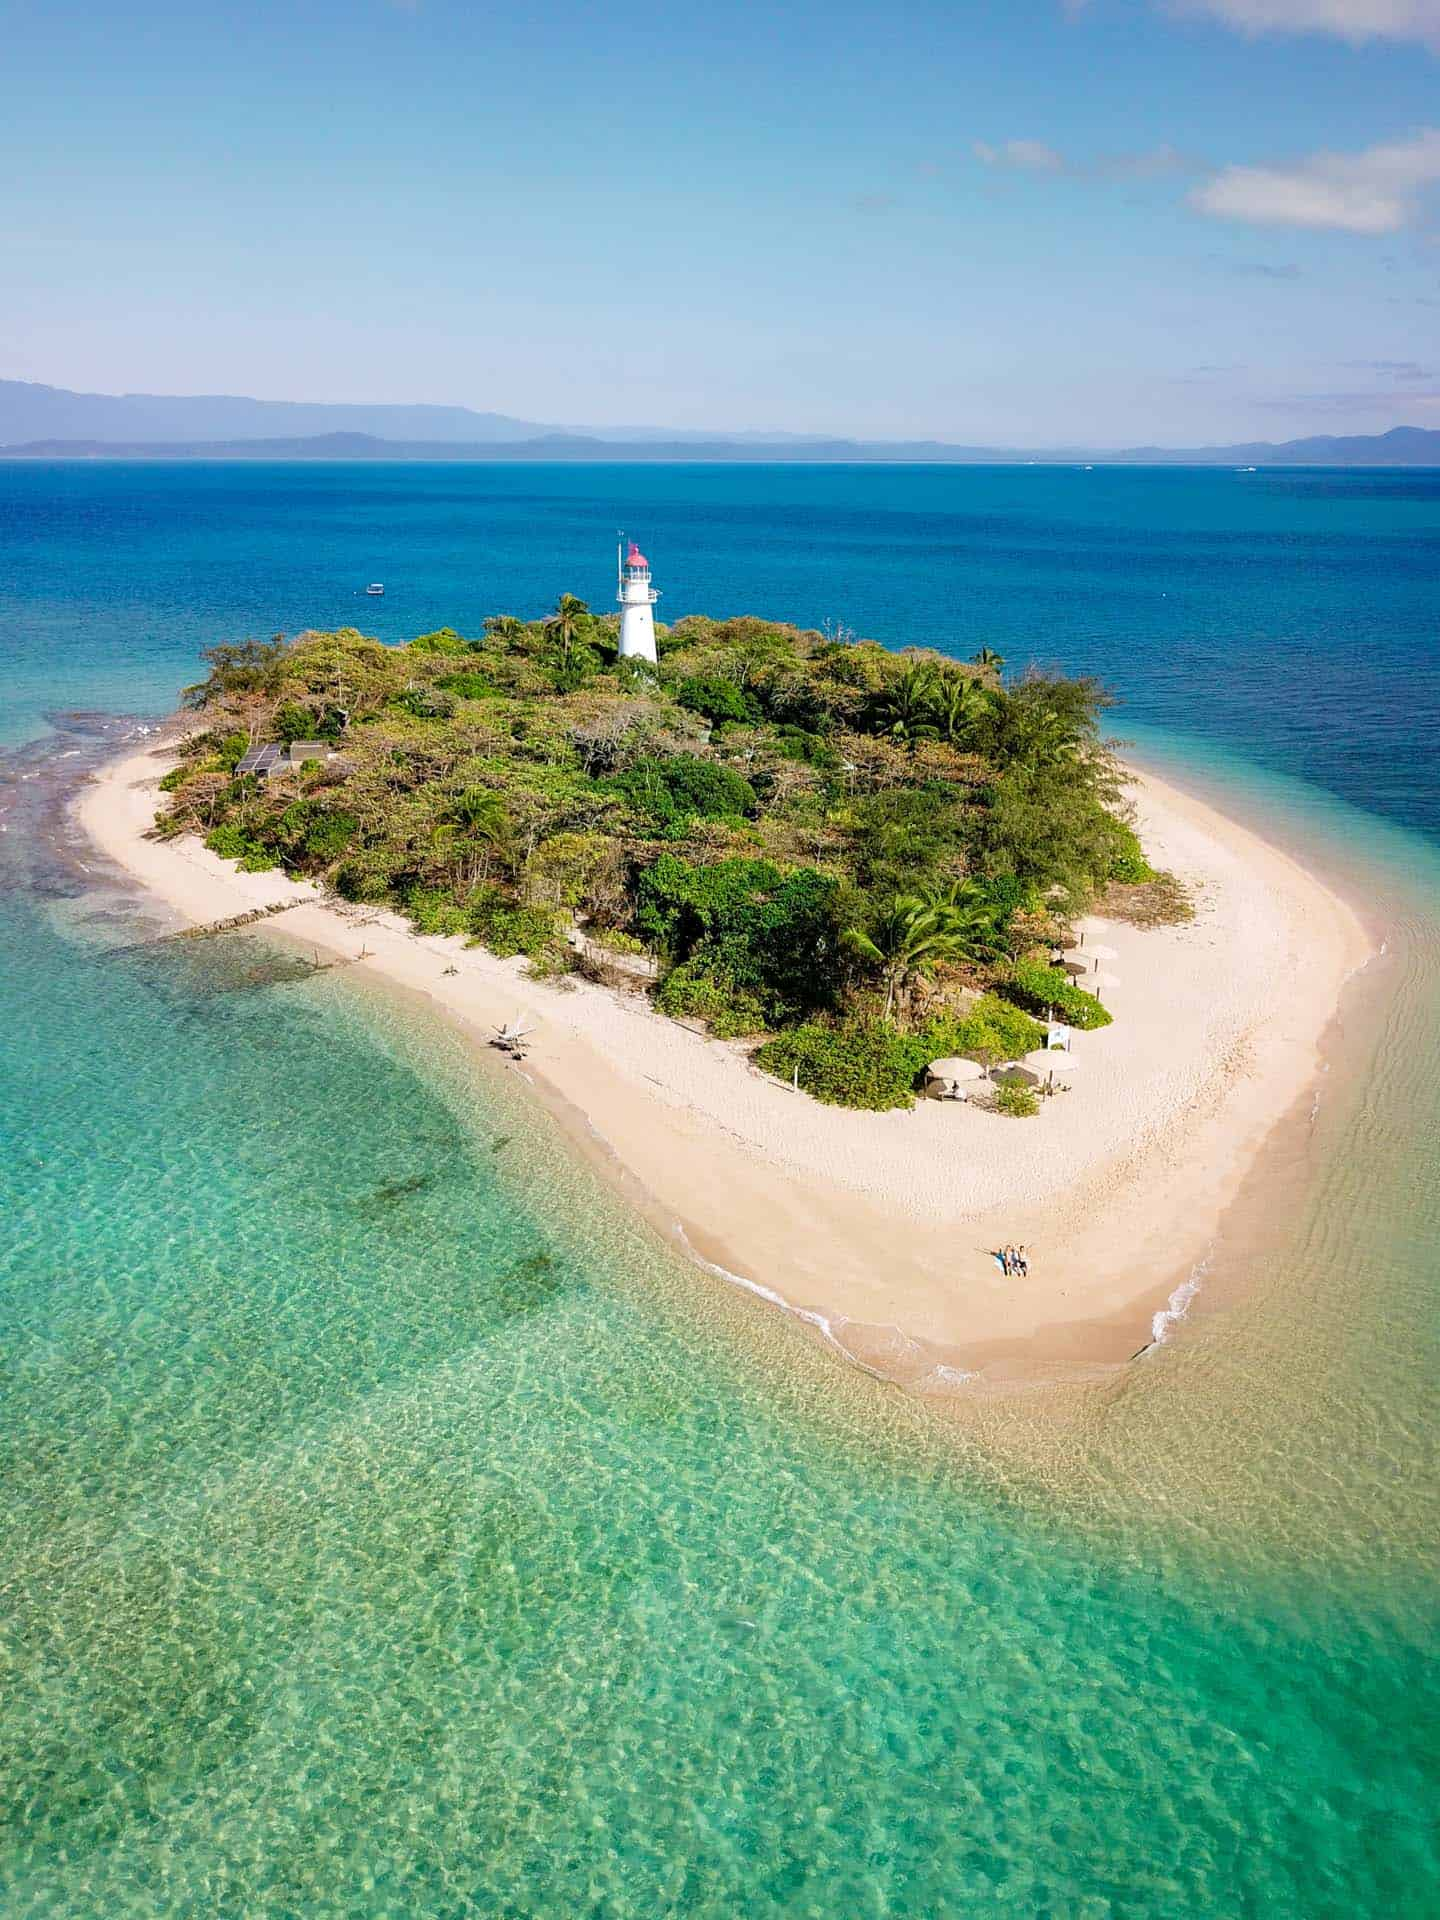 An aerial view of the smaller Low Isles island, one of the best things to do in Cairns